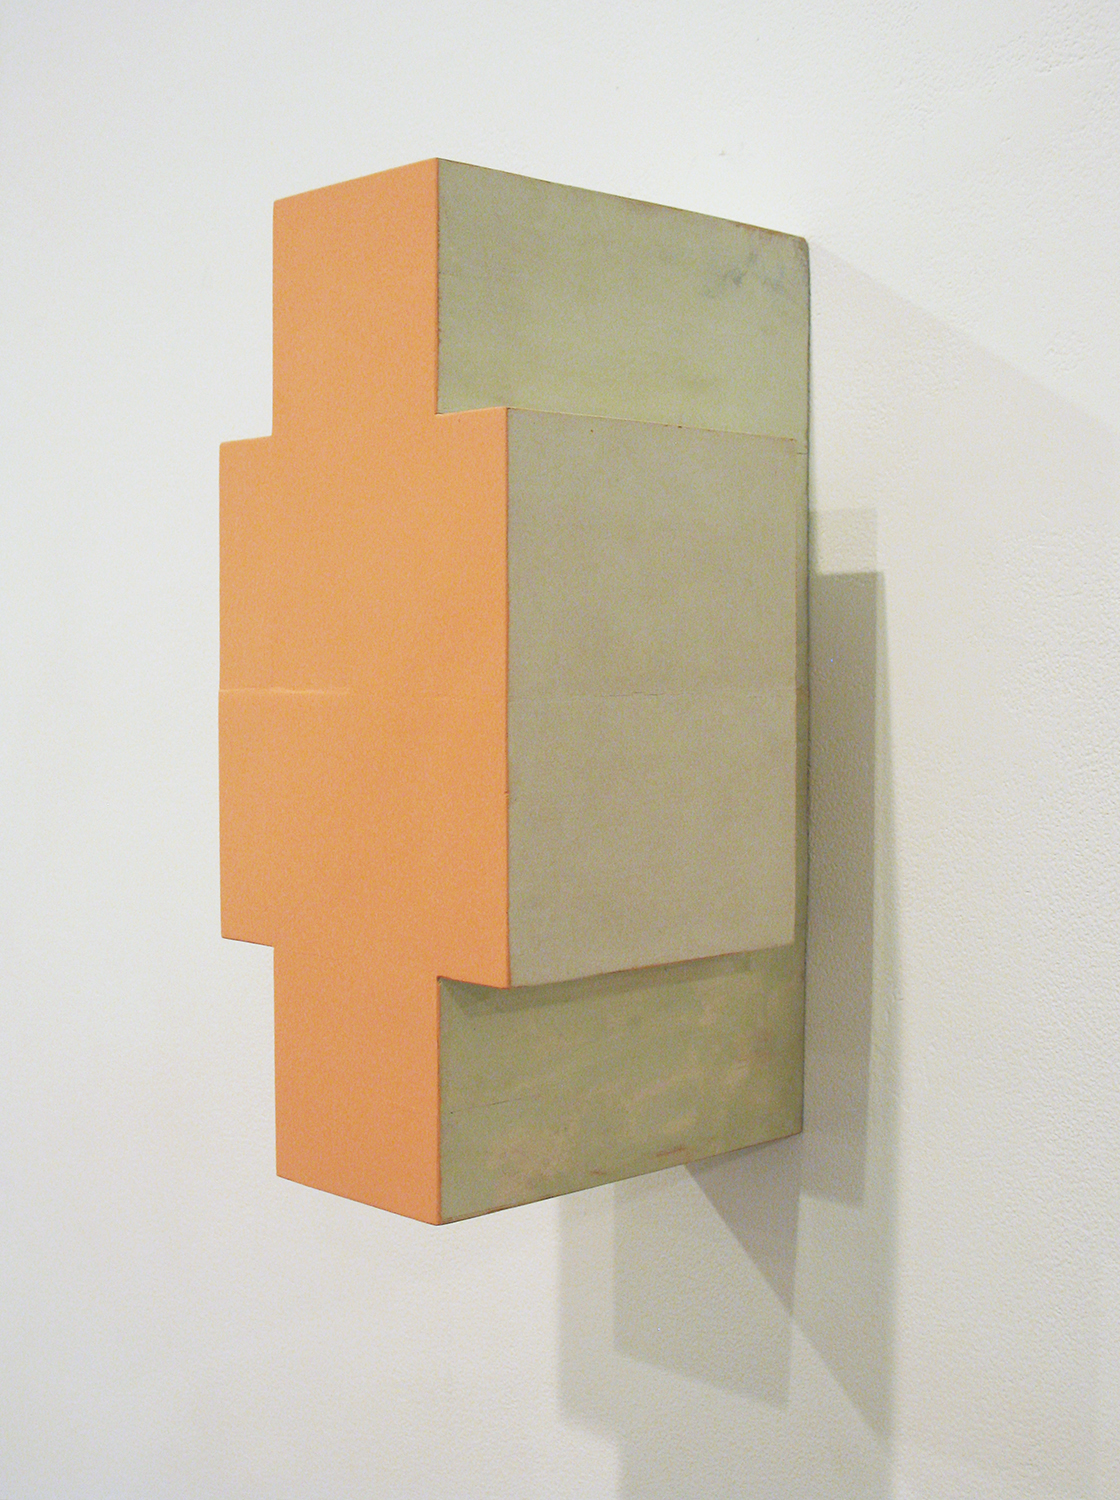 TS9308|Colour gesso on laminated soft wood|37.5 x 17 x 20 cm|1993